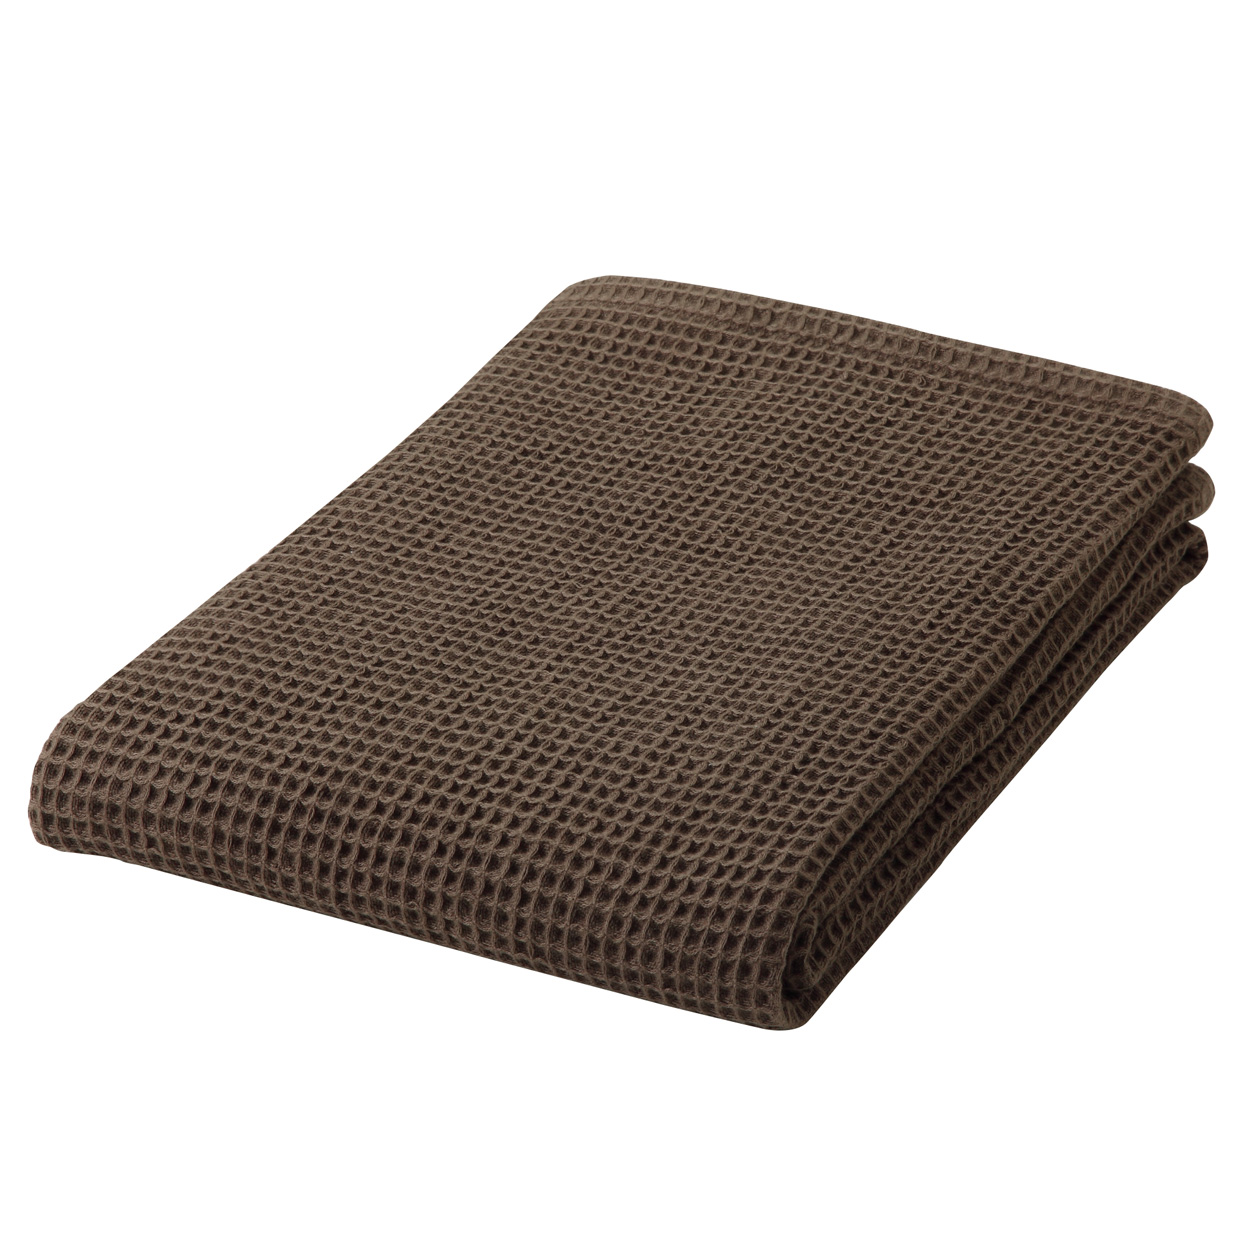 ORGANIC COTTON WAFFLE SMALL BATH TOWEL THIN BROWN